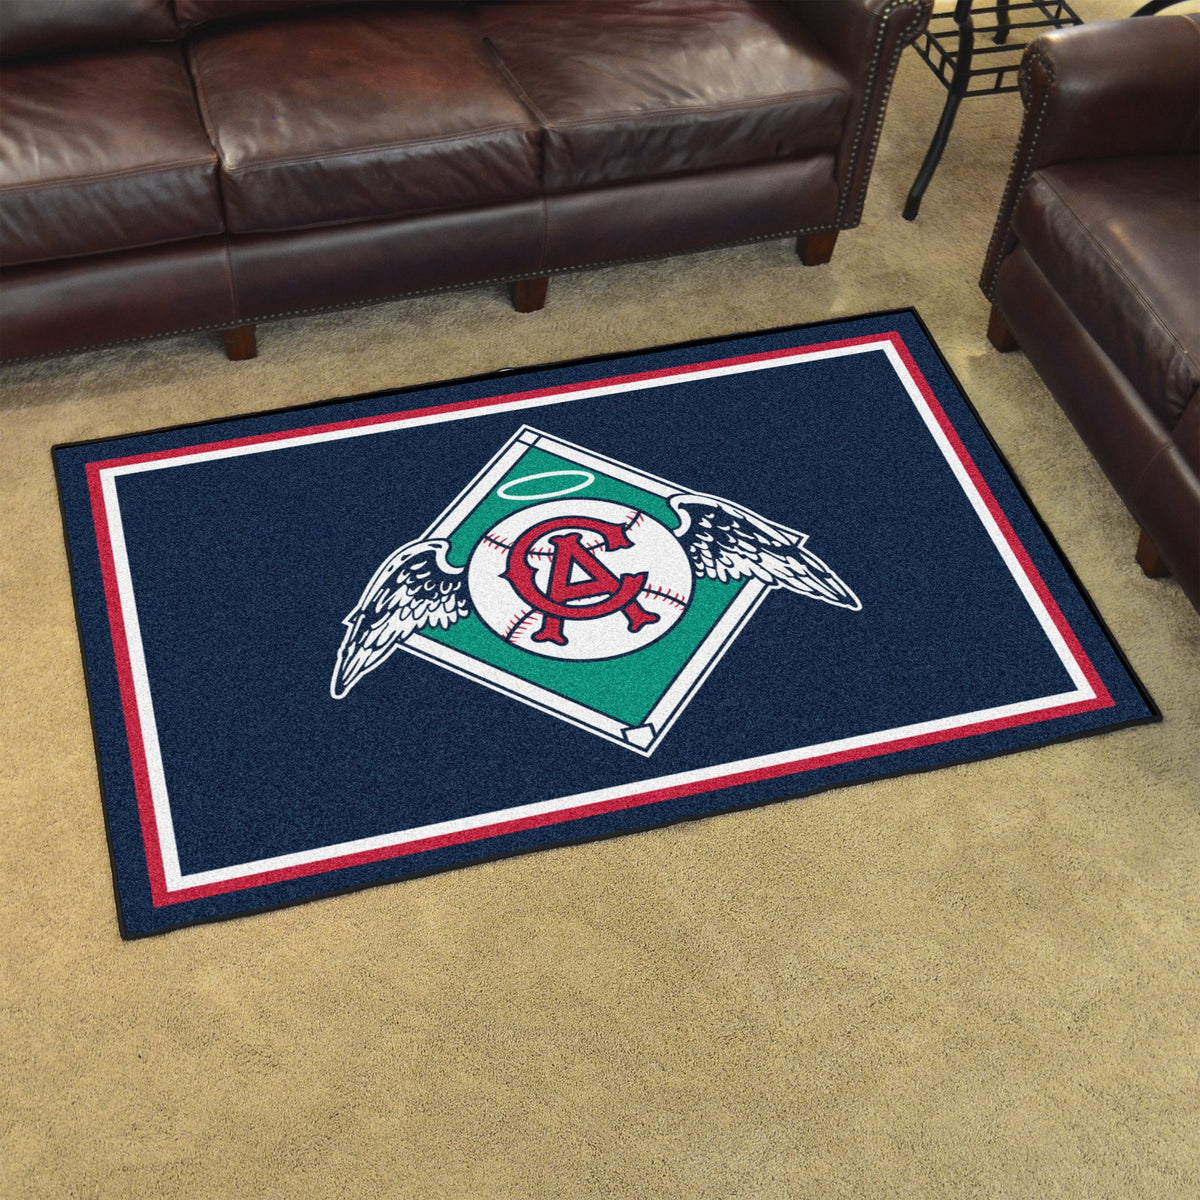 MLB Retro - 4' x 6' Rug MLB Retro Mats, Plush Rugs, 4x6 Rug, MLB, Home Fan Mats California Angels